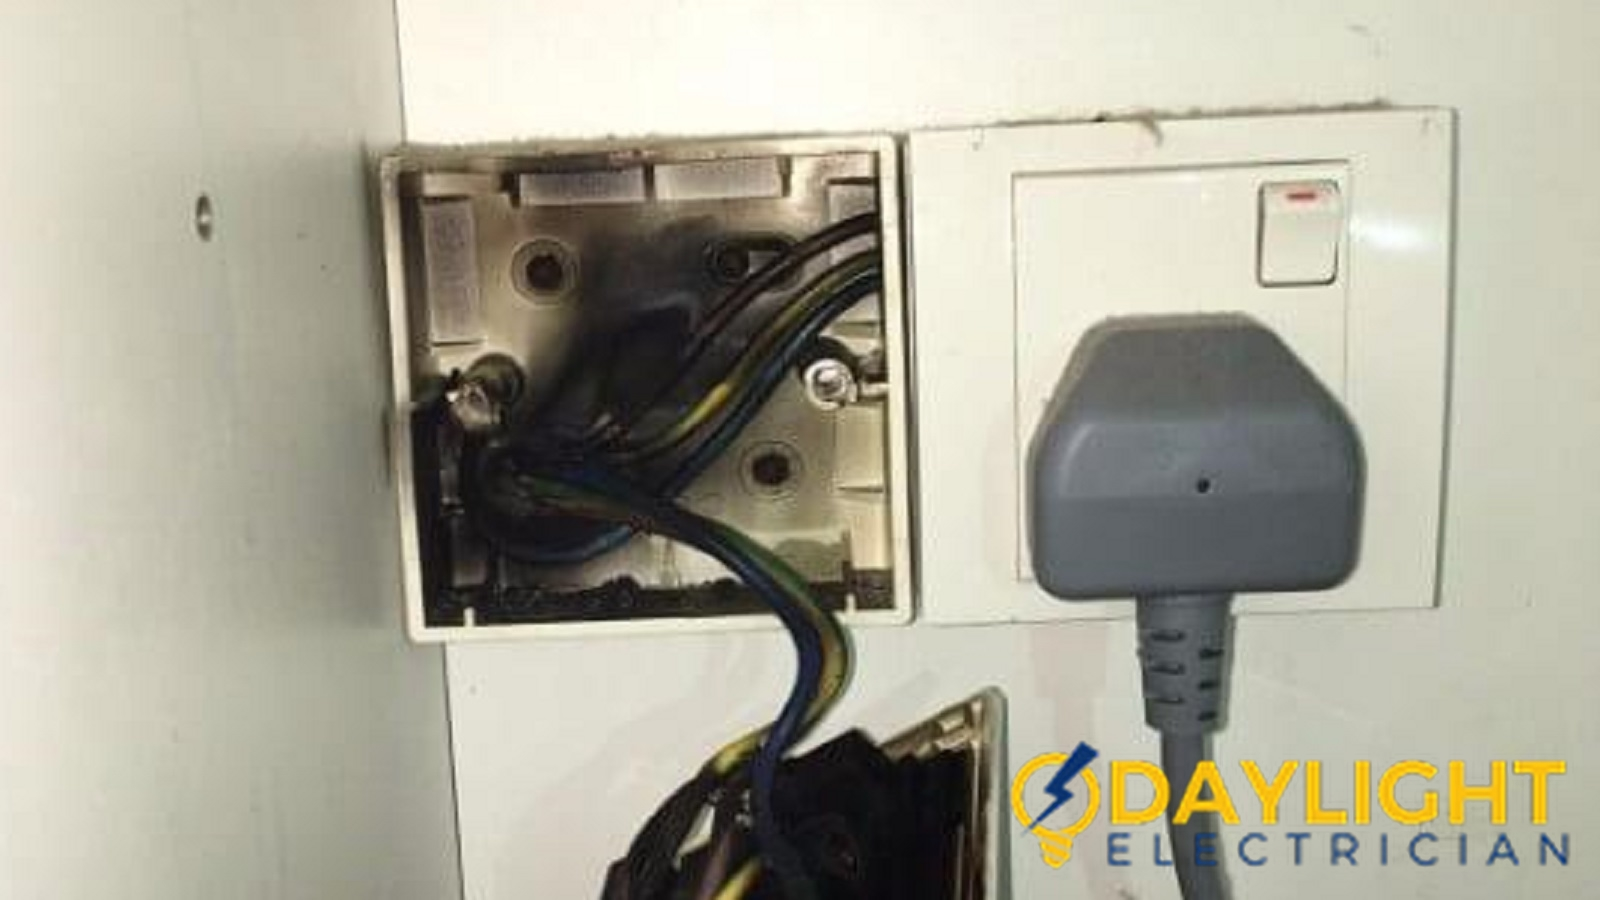 Electrical Works Projects Done By Daylight Electrician Singapore Repair Wall Outlet Replace Power Socket Overload Burnt Landed West Coast Faber Drive